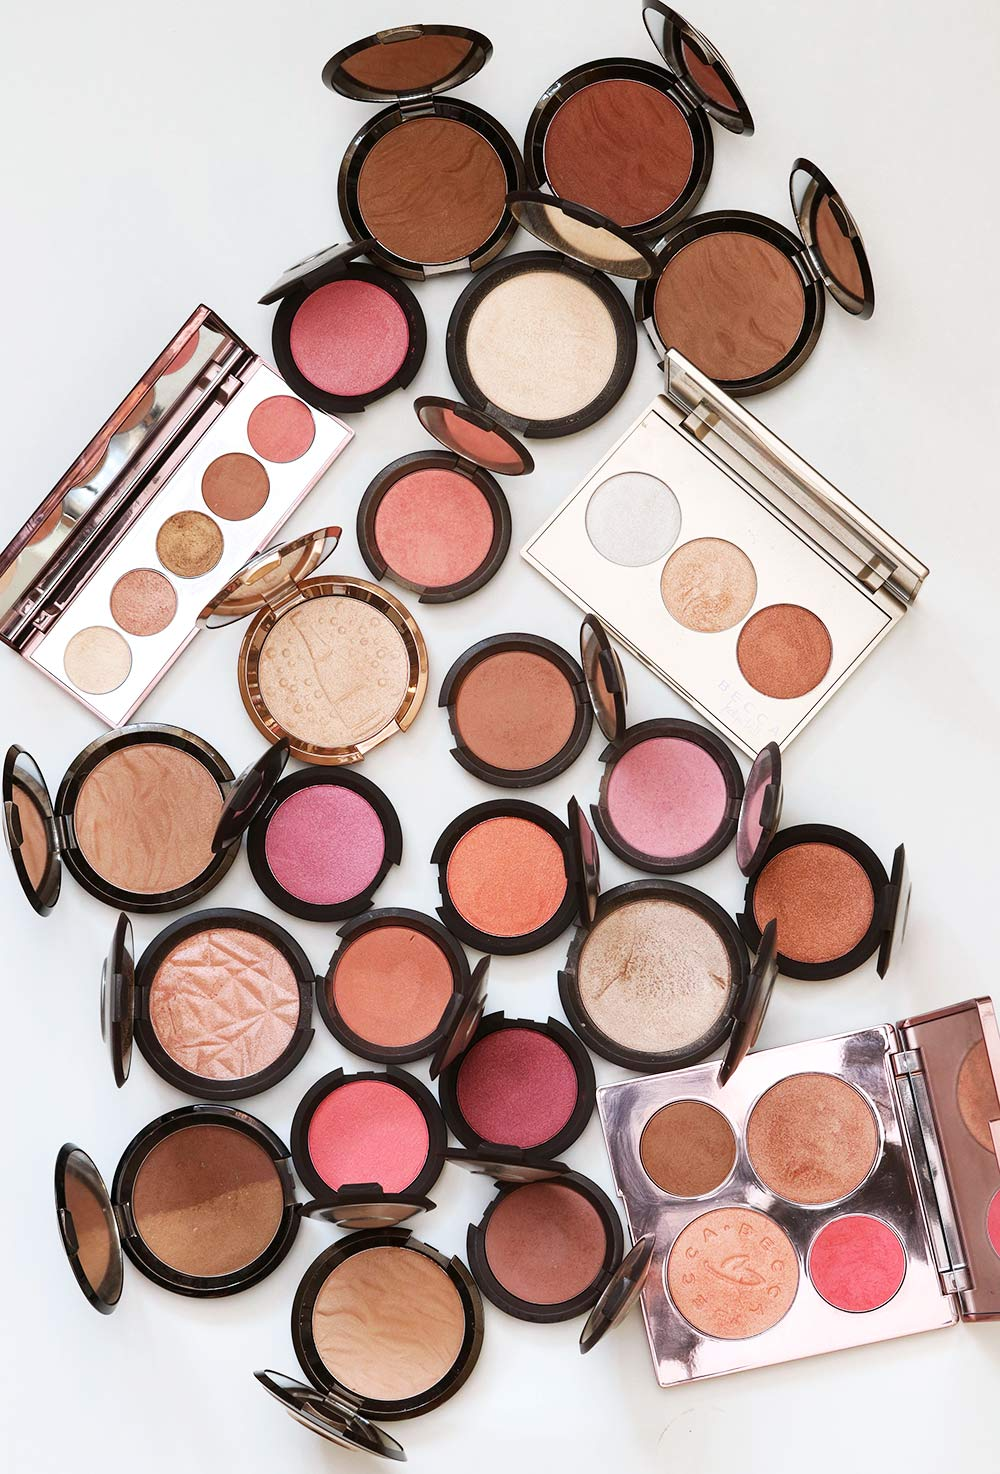 becca cosmetics flat lay monday poll july 17